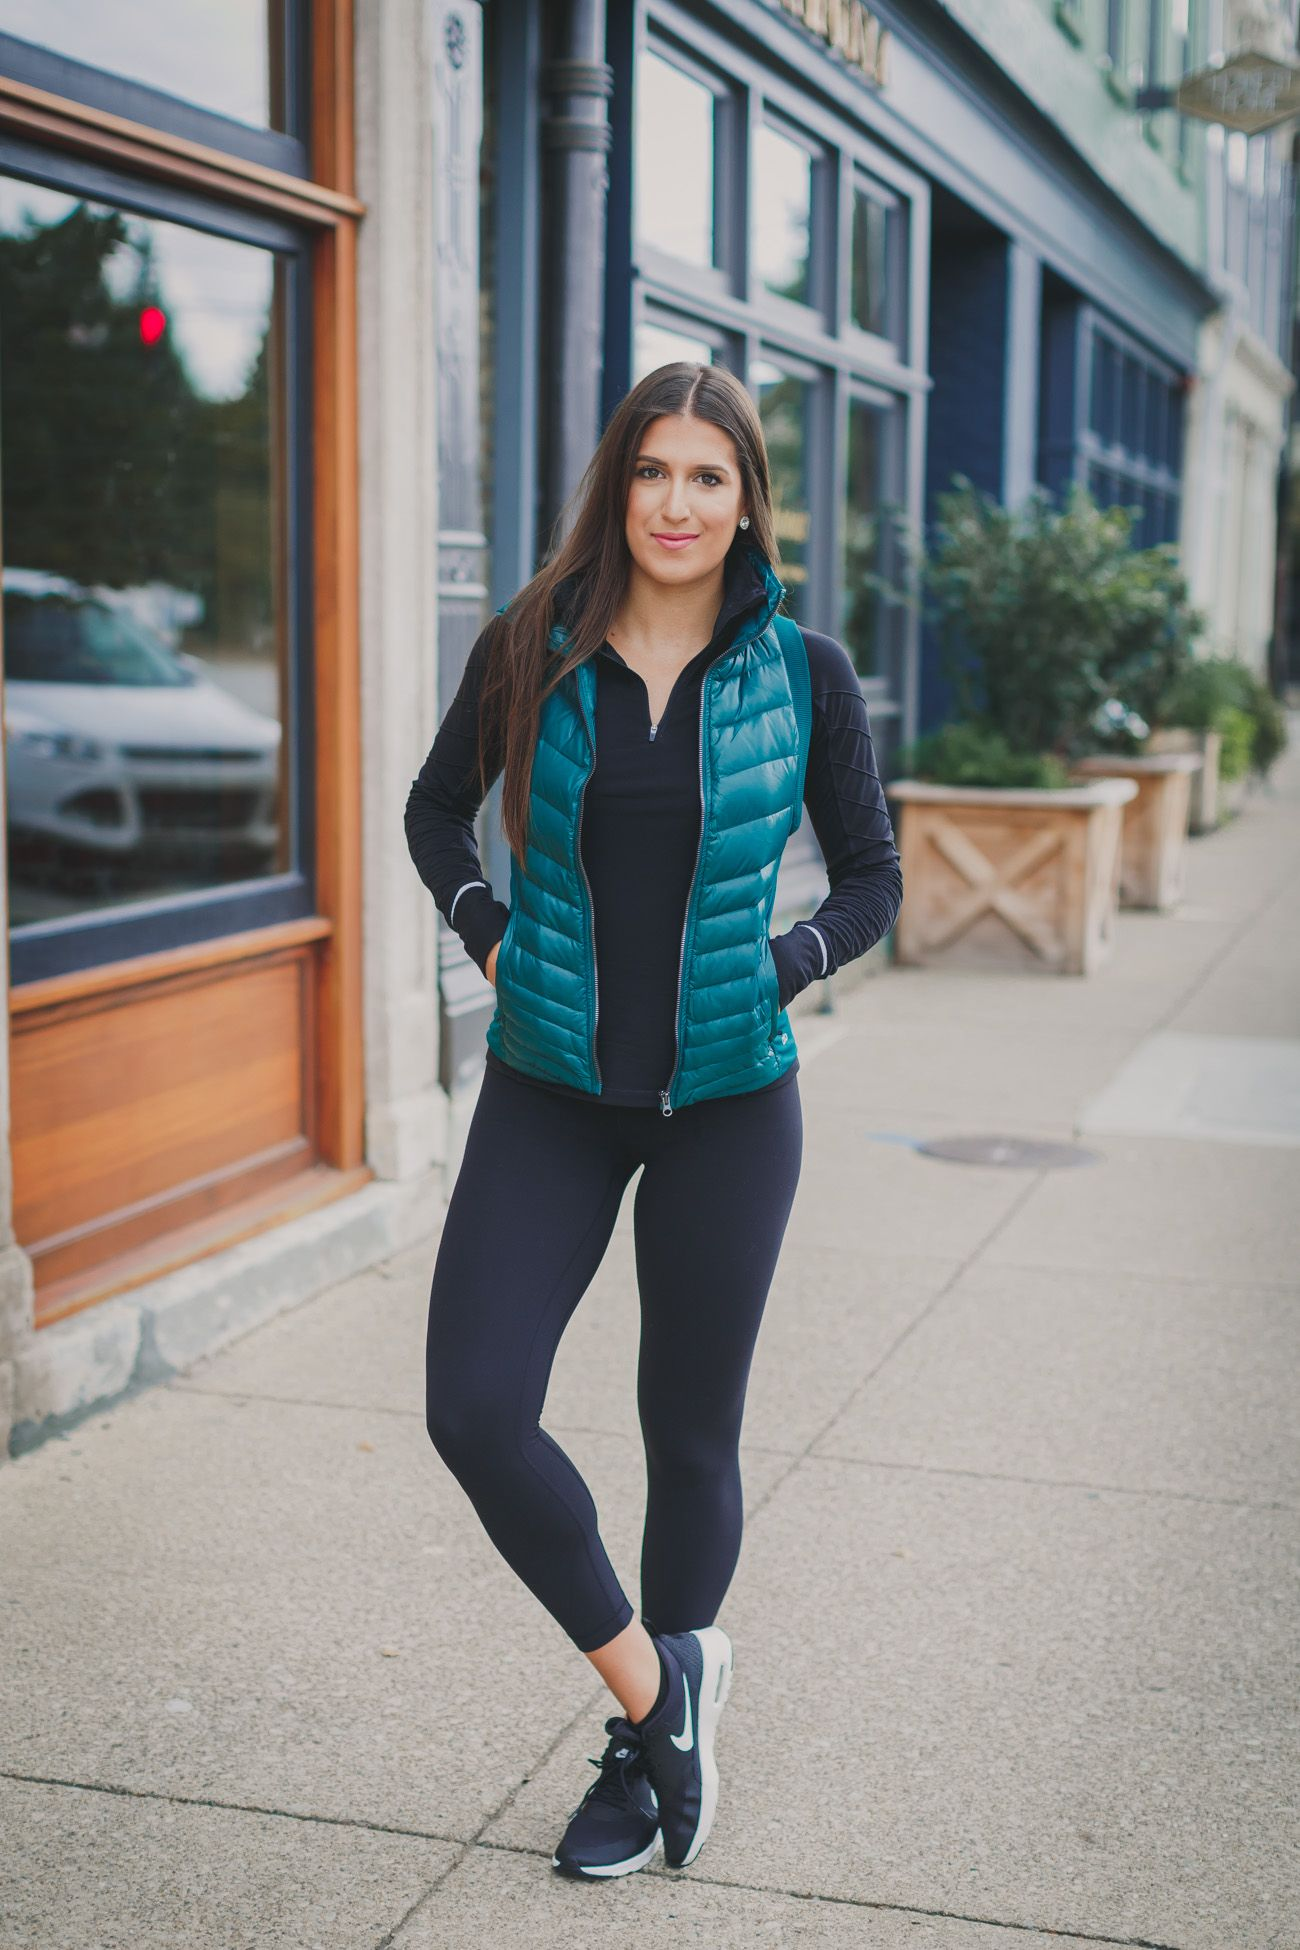 Weekly Workout Routine Puffer Vest A Southern Drawl Womens Workout Outfits Gym Clothes Women Vest Outfits For Women [ 1950 x 1300 Pixel ]